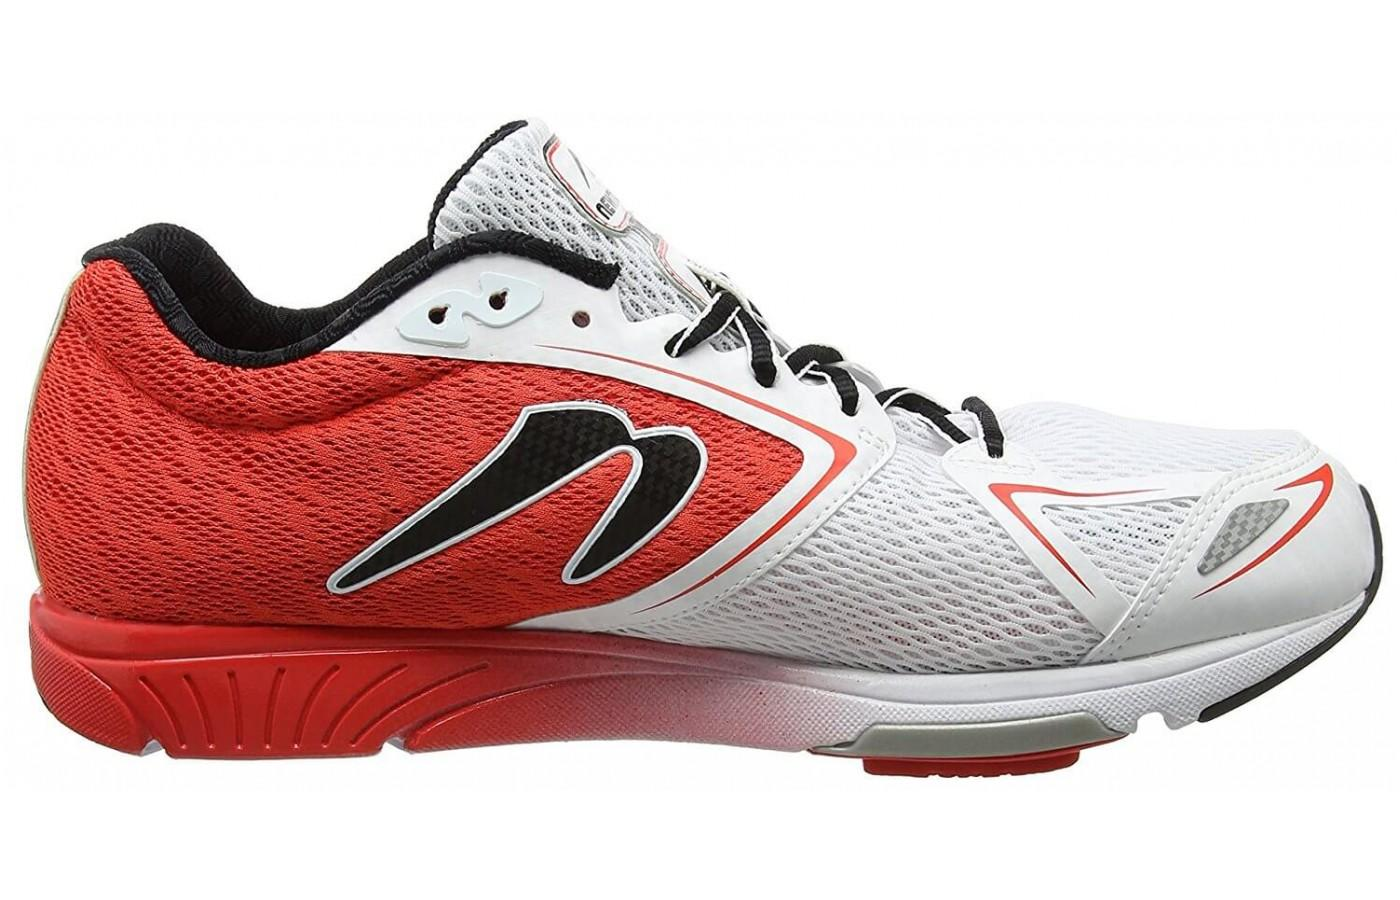 The Newton Distance 6 has a full flex zone for comfortable splaying